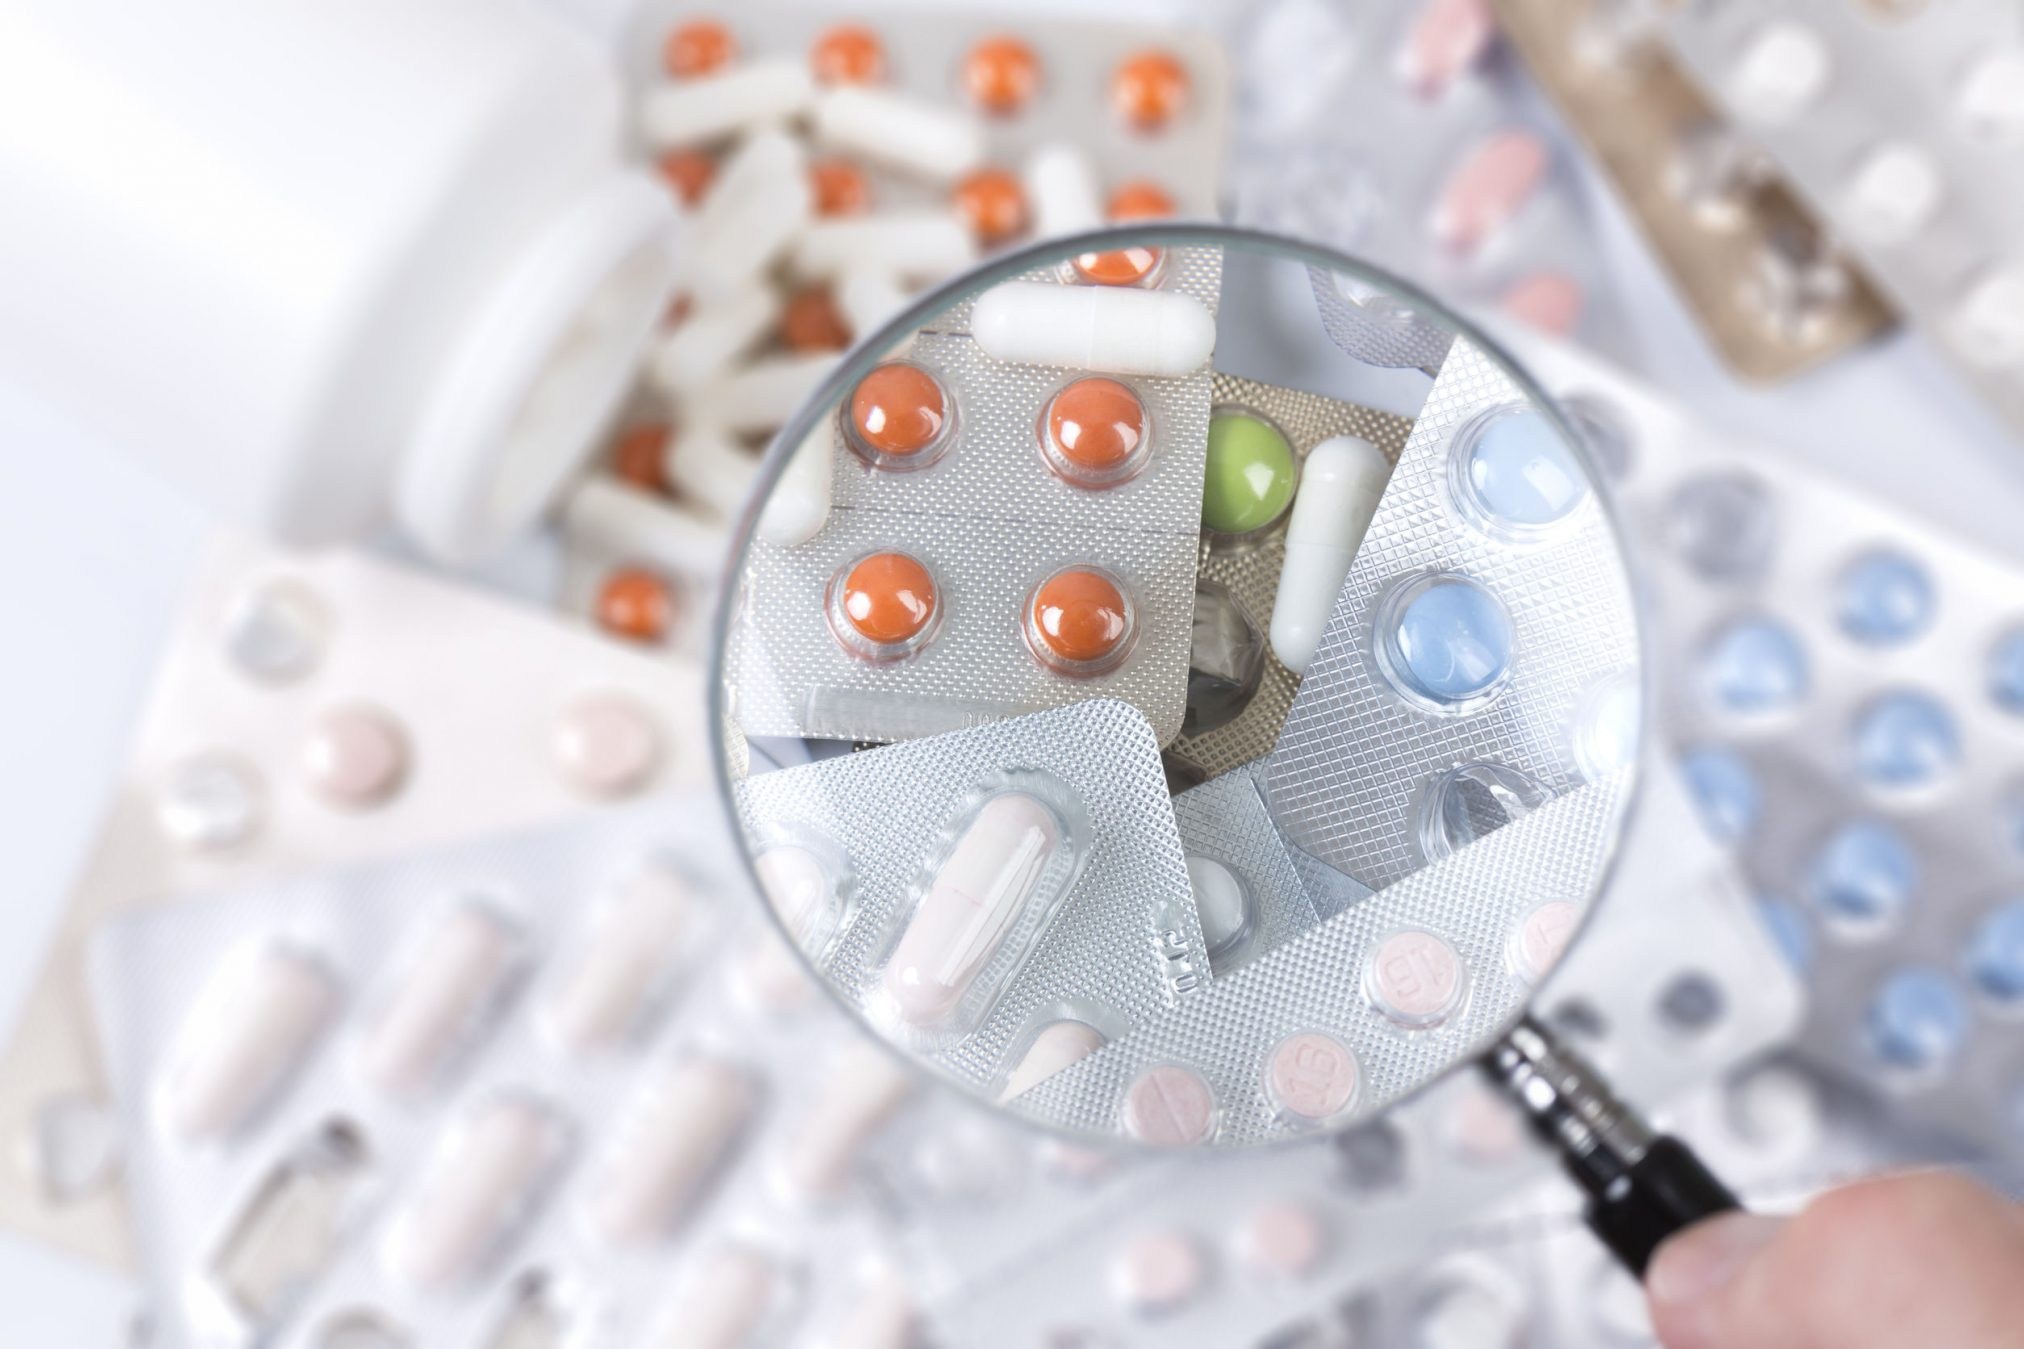 medicines under magnifying glass